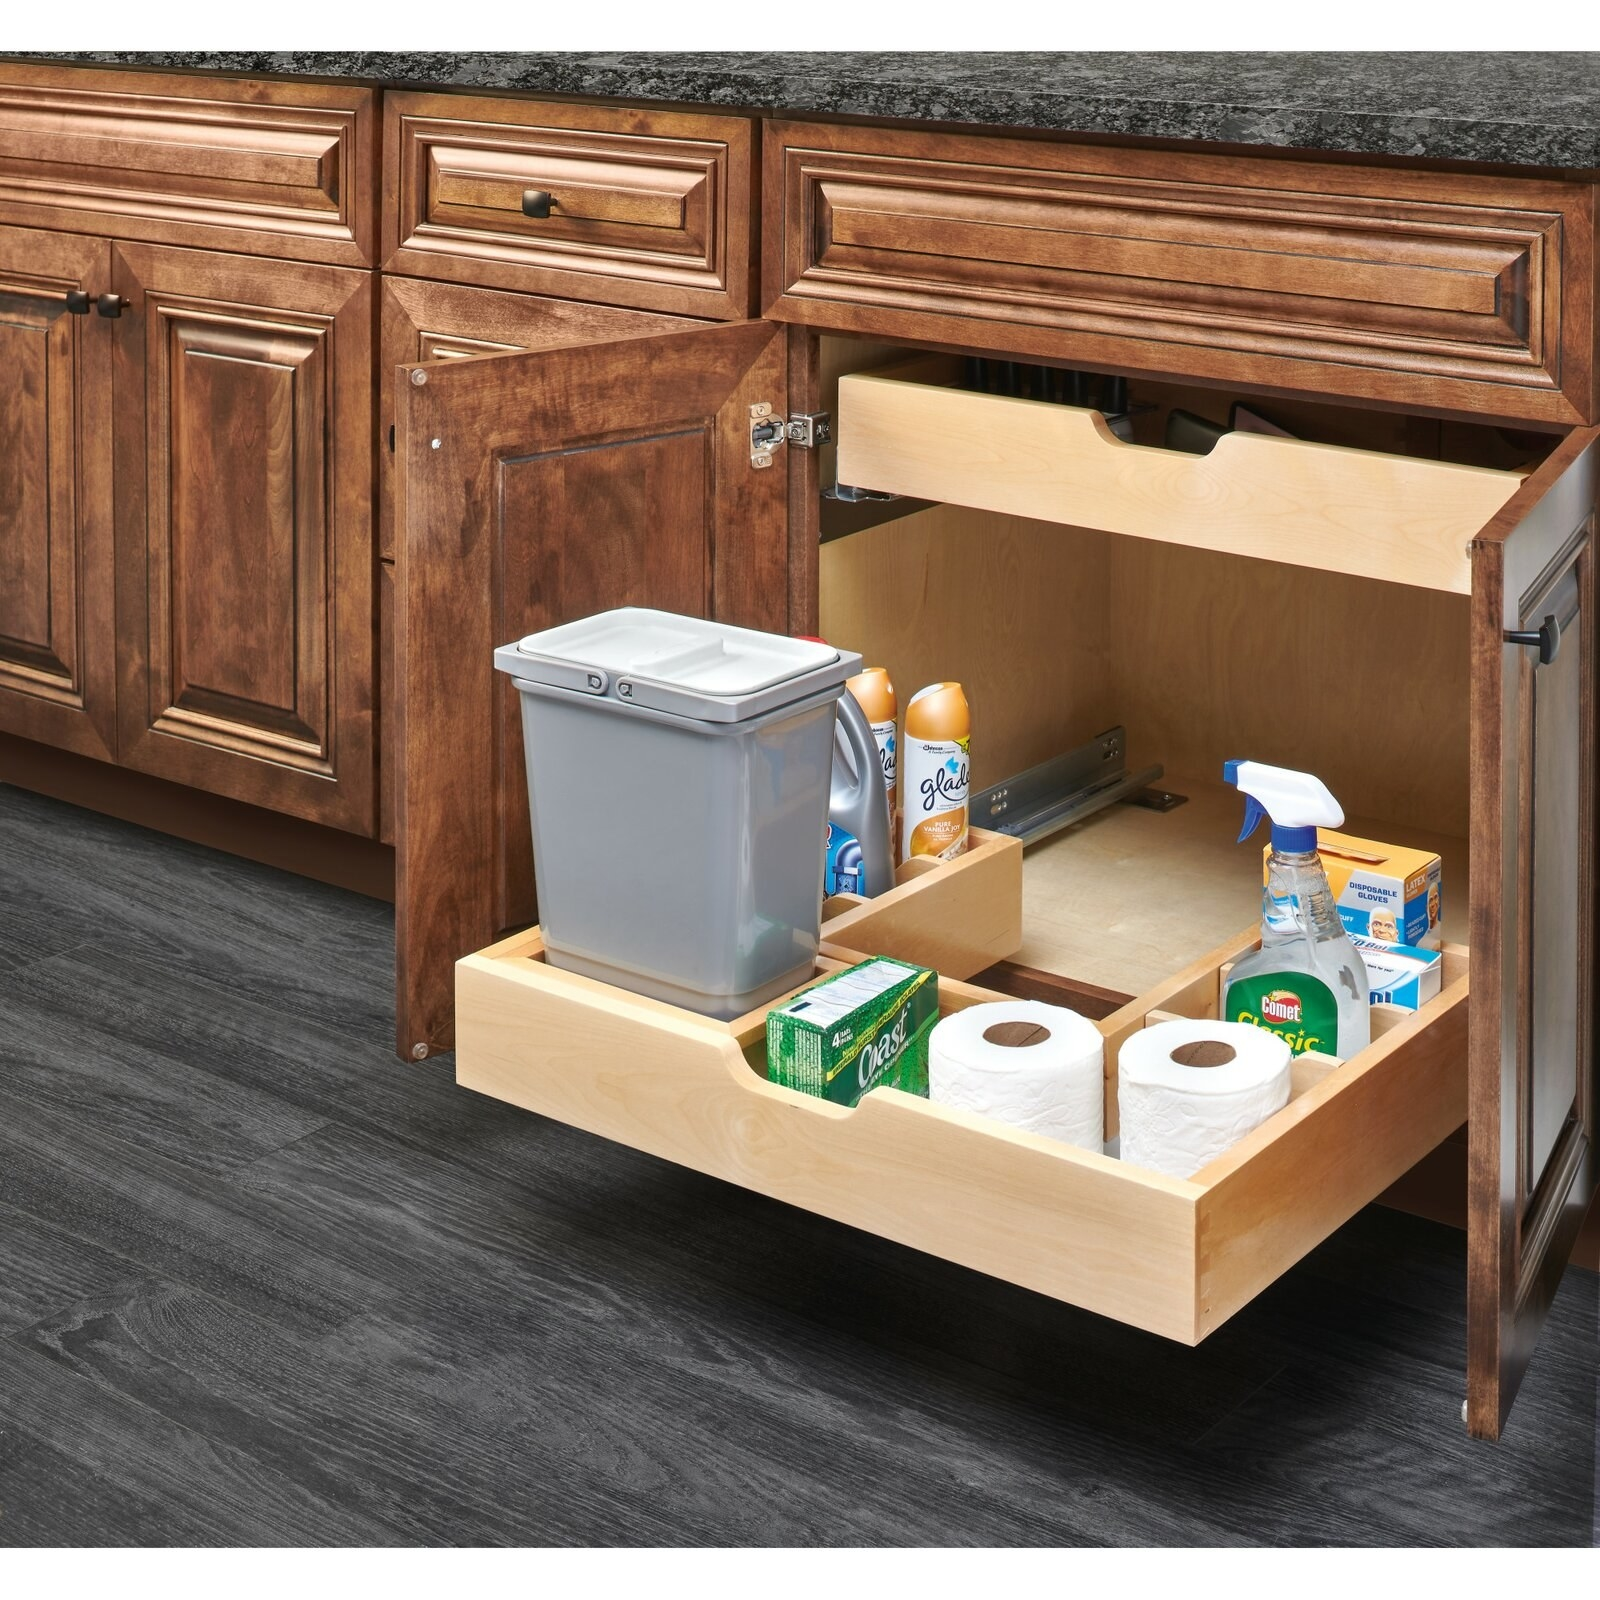 The under sink pull-out pantry